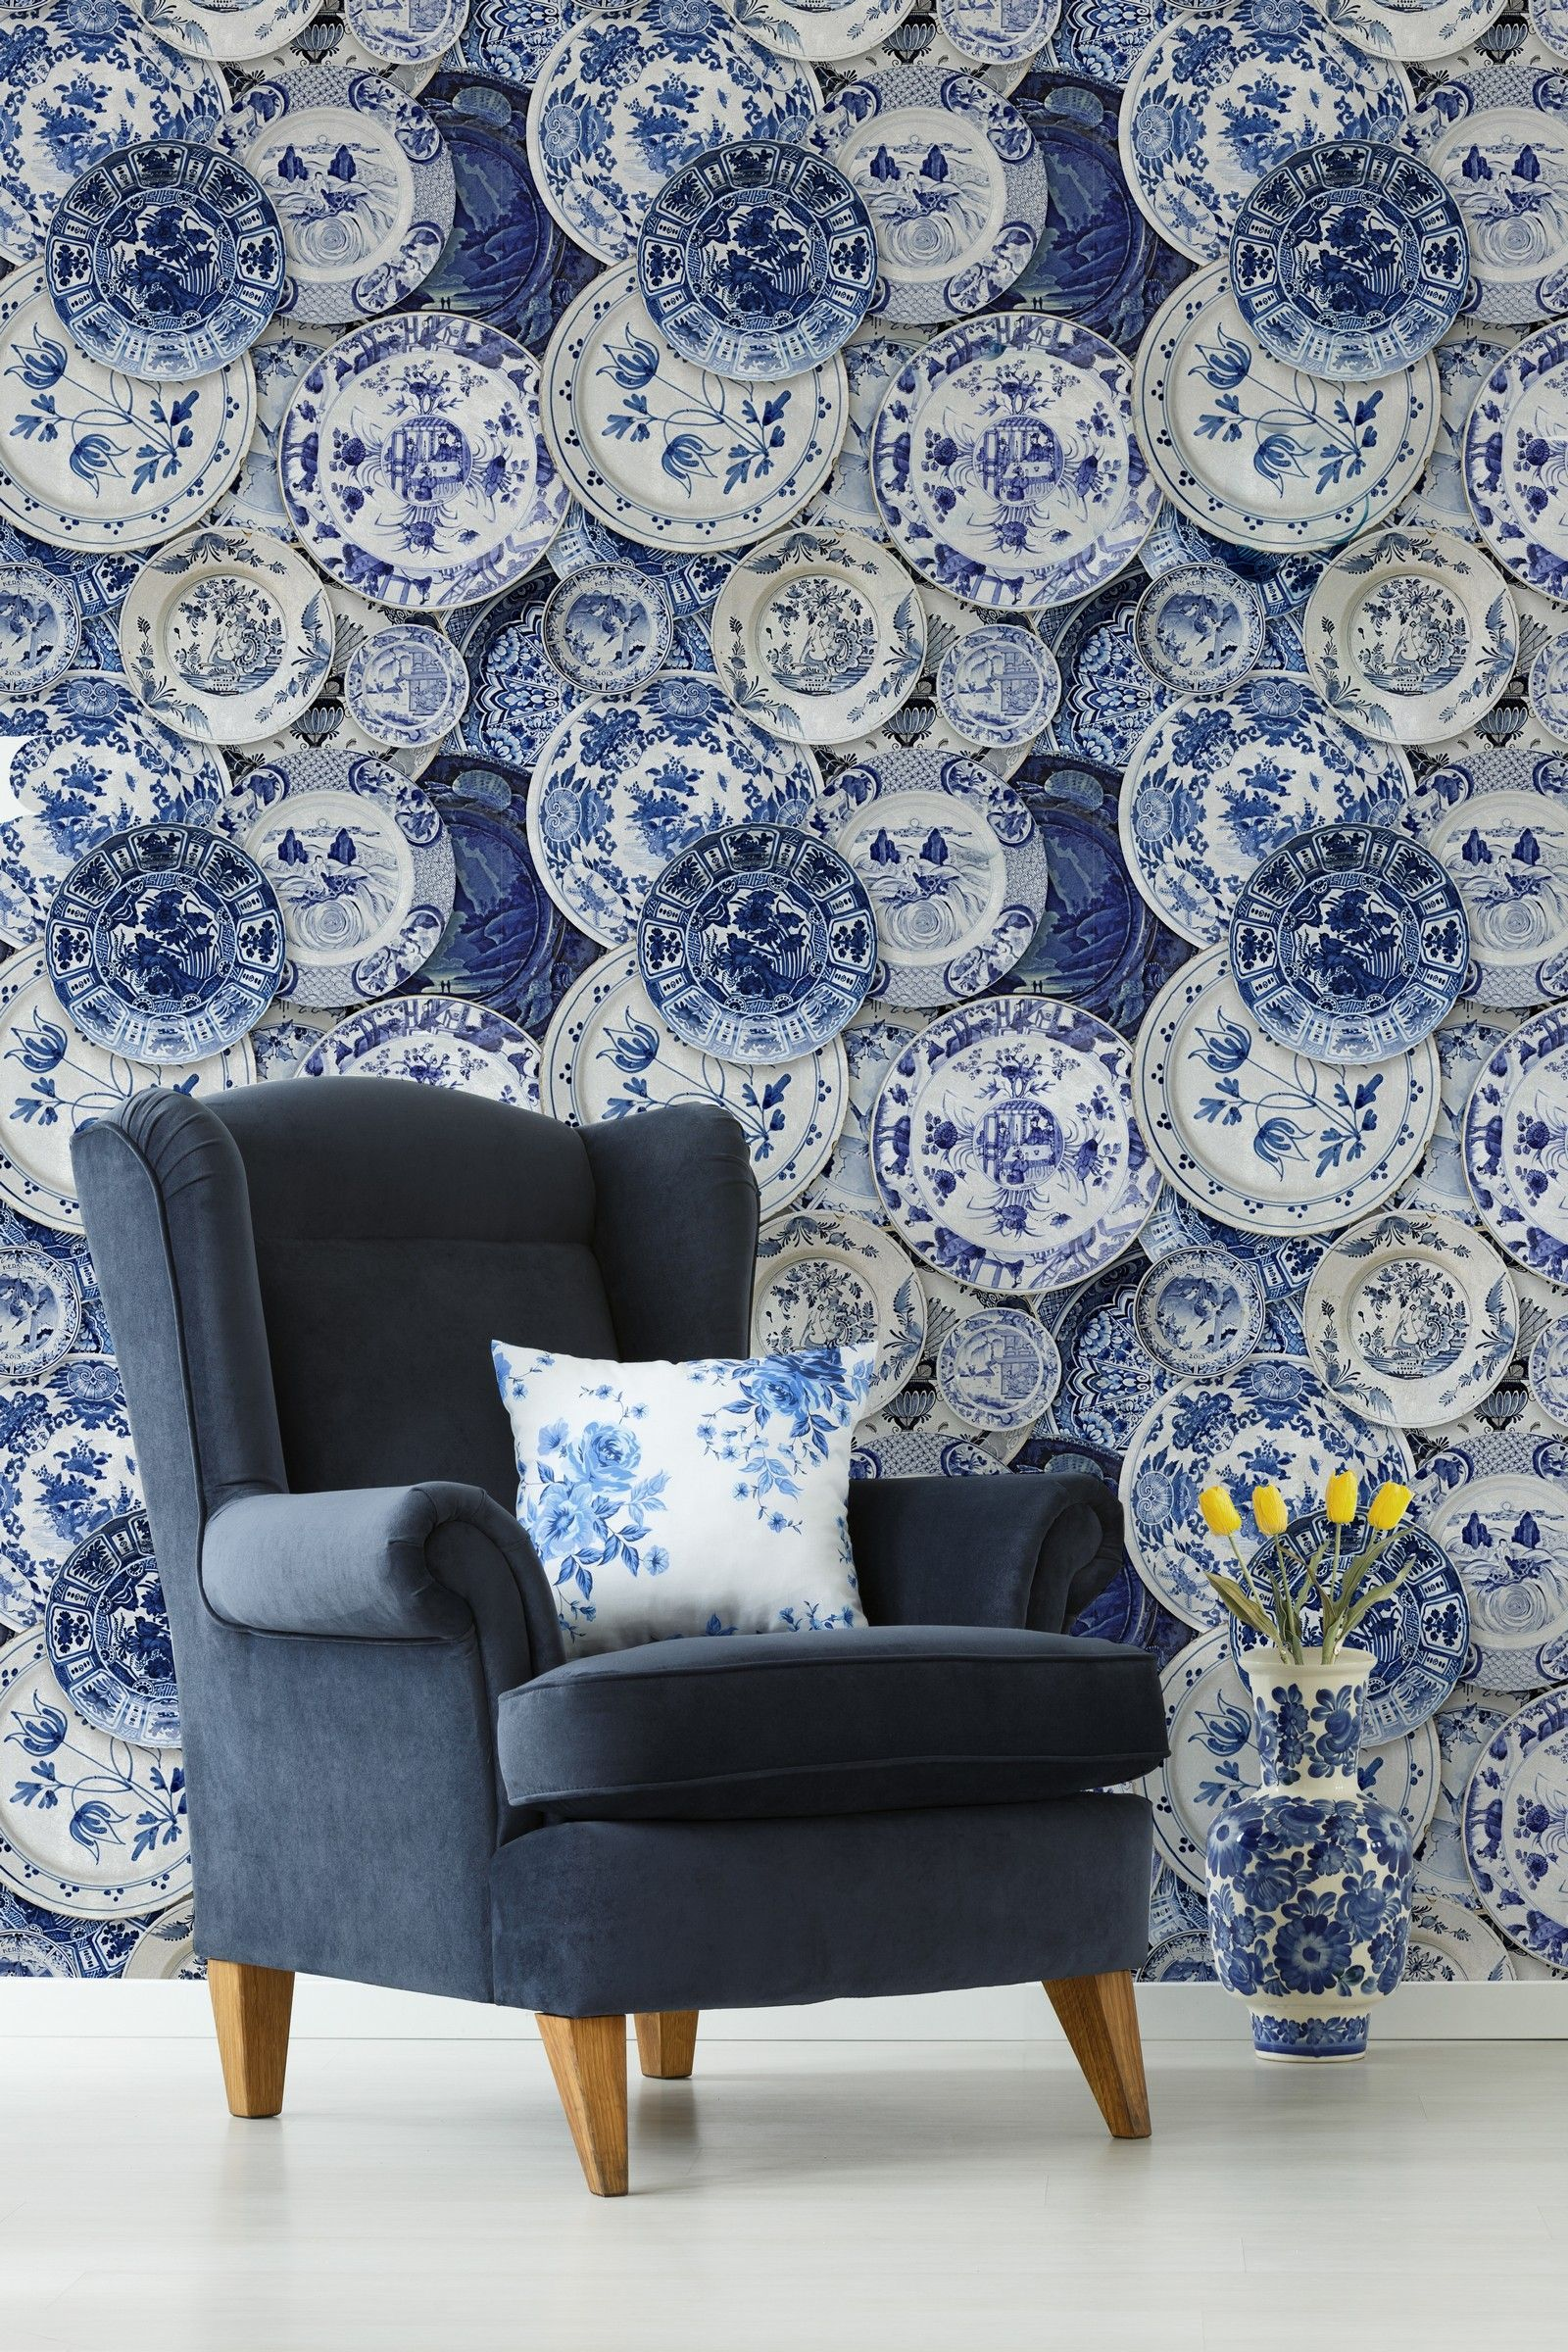 Delft Blue Wallpaper (With images) Blue wallpapers, Blue